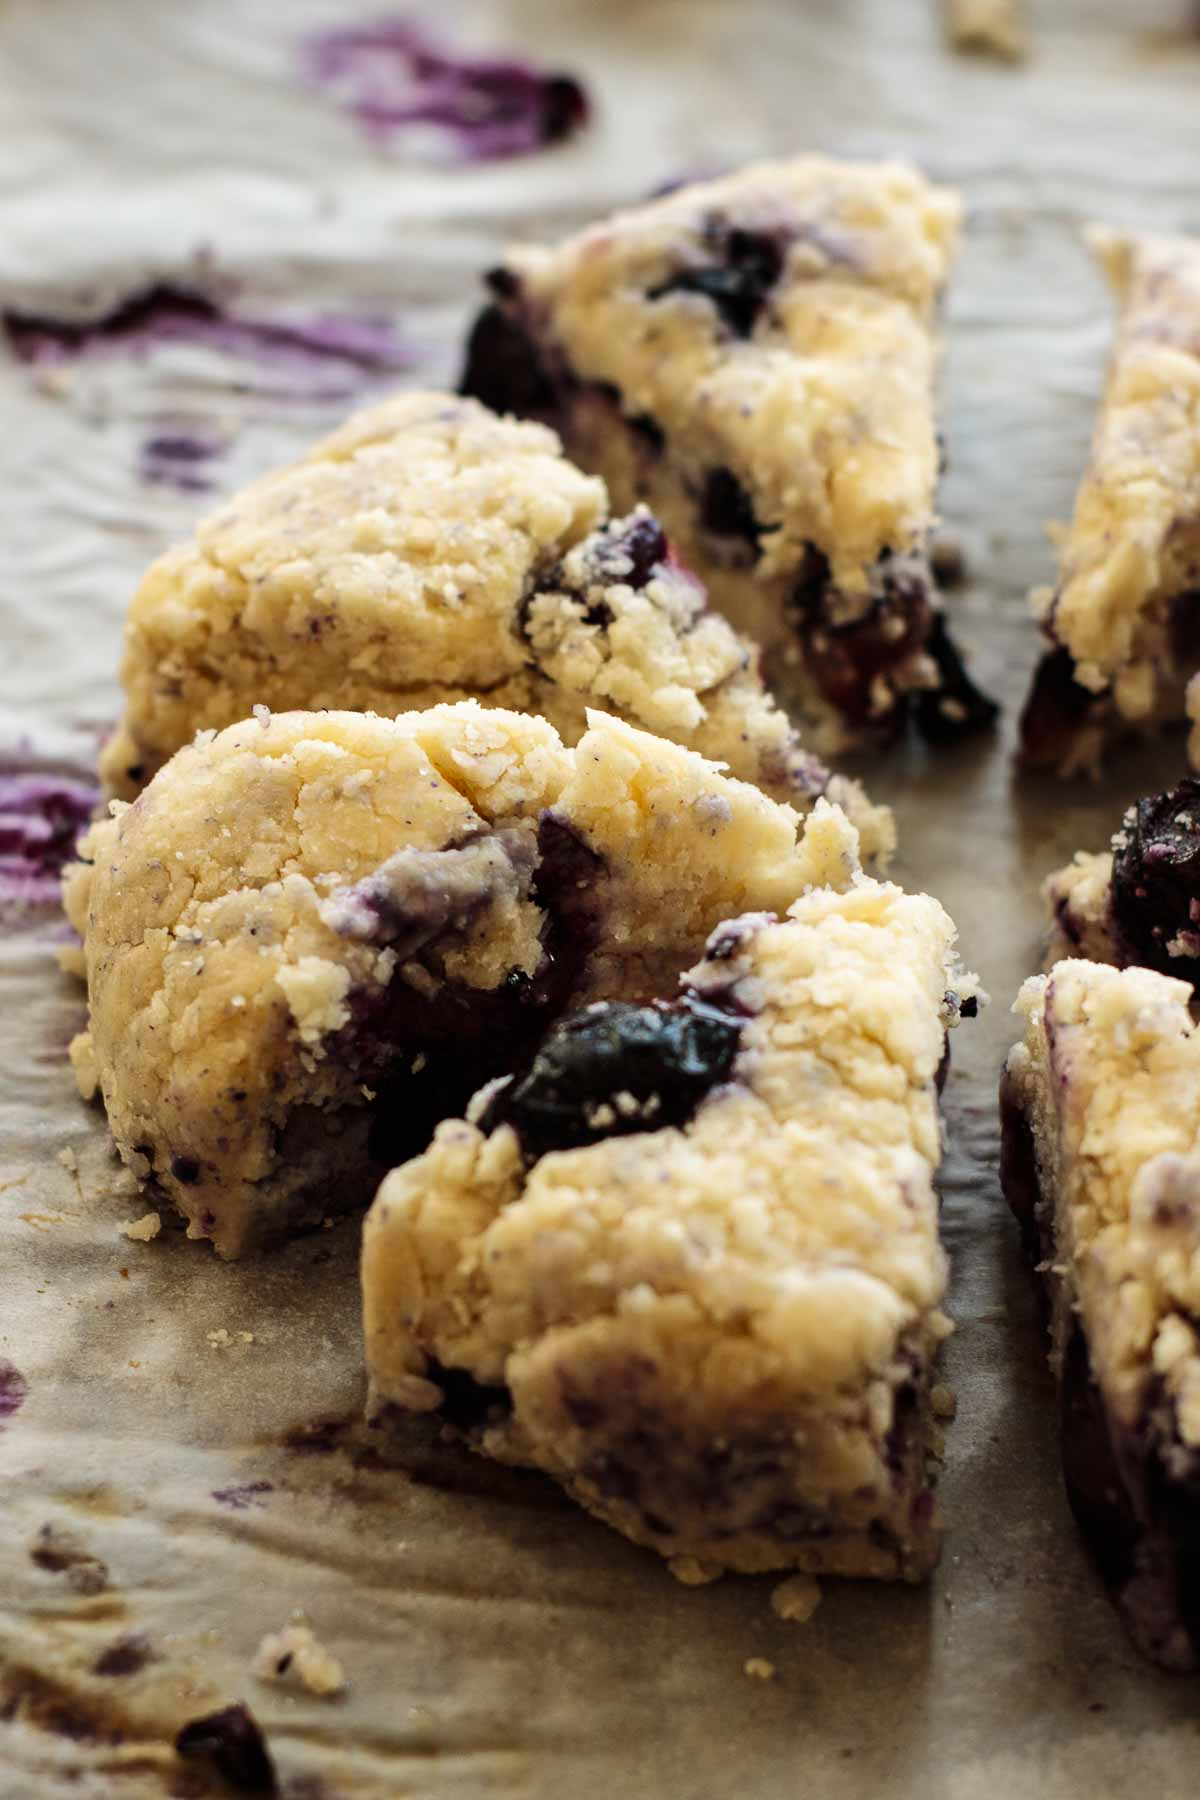 Shaped blueberry scones.